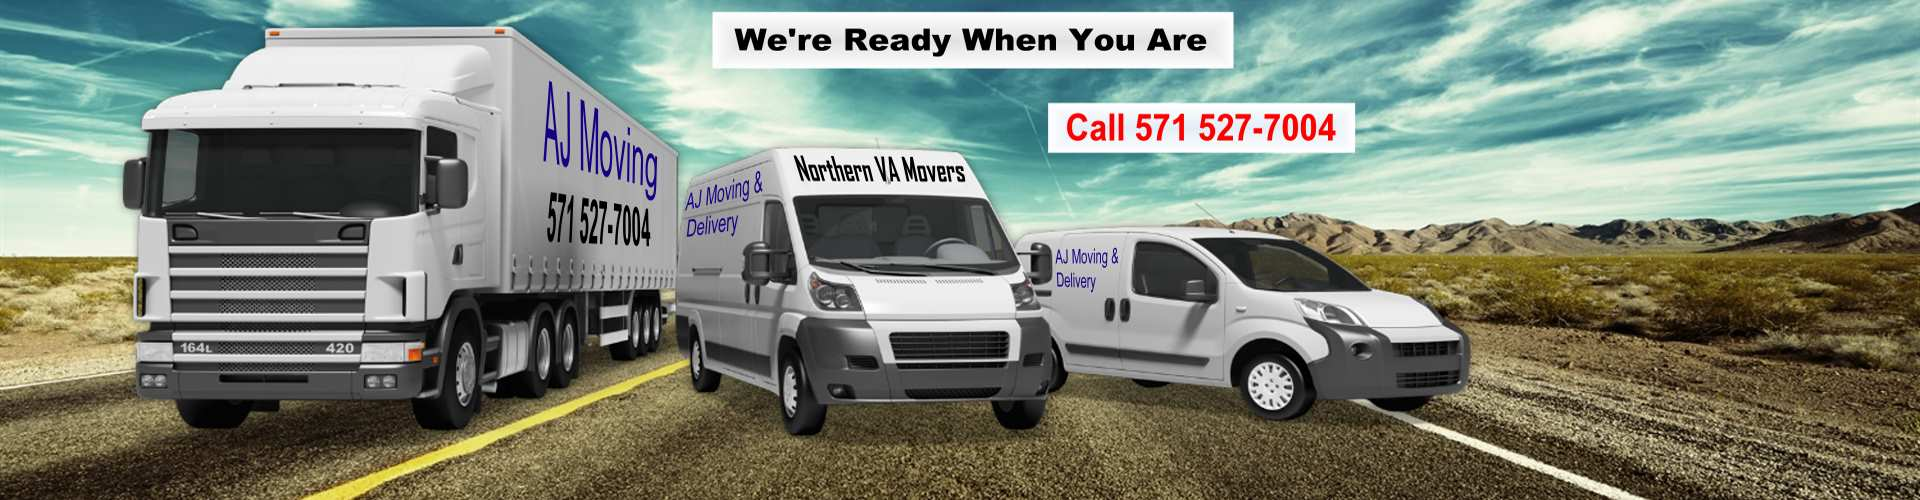 Northern Virginia Moving Company Aj Moving